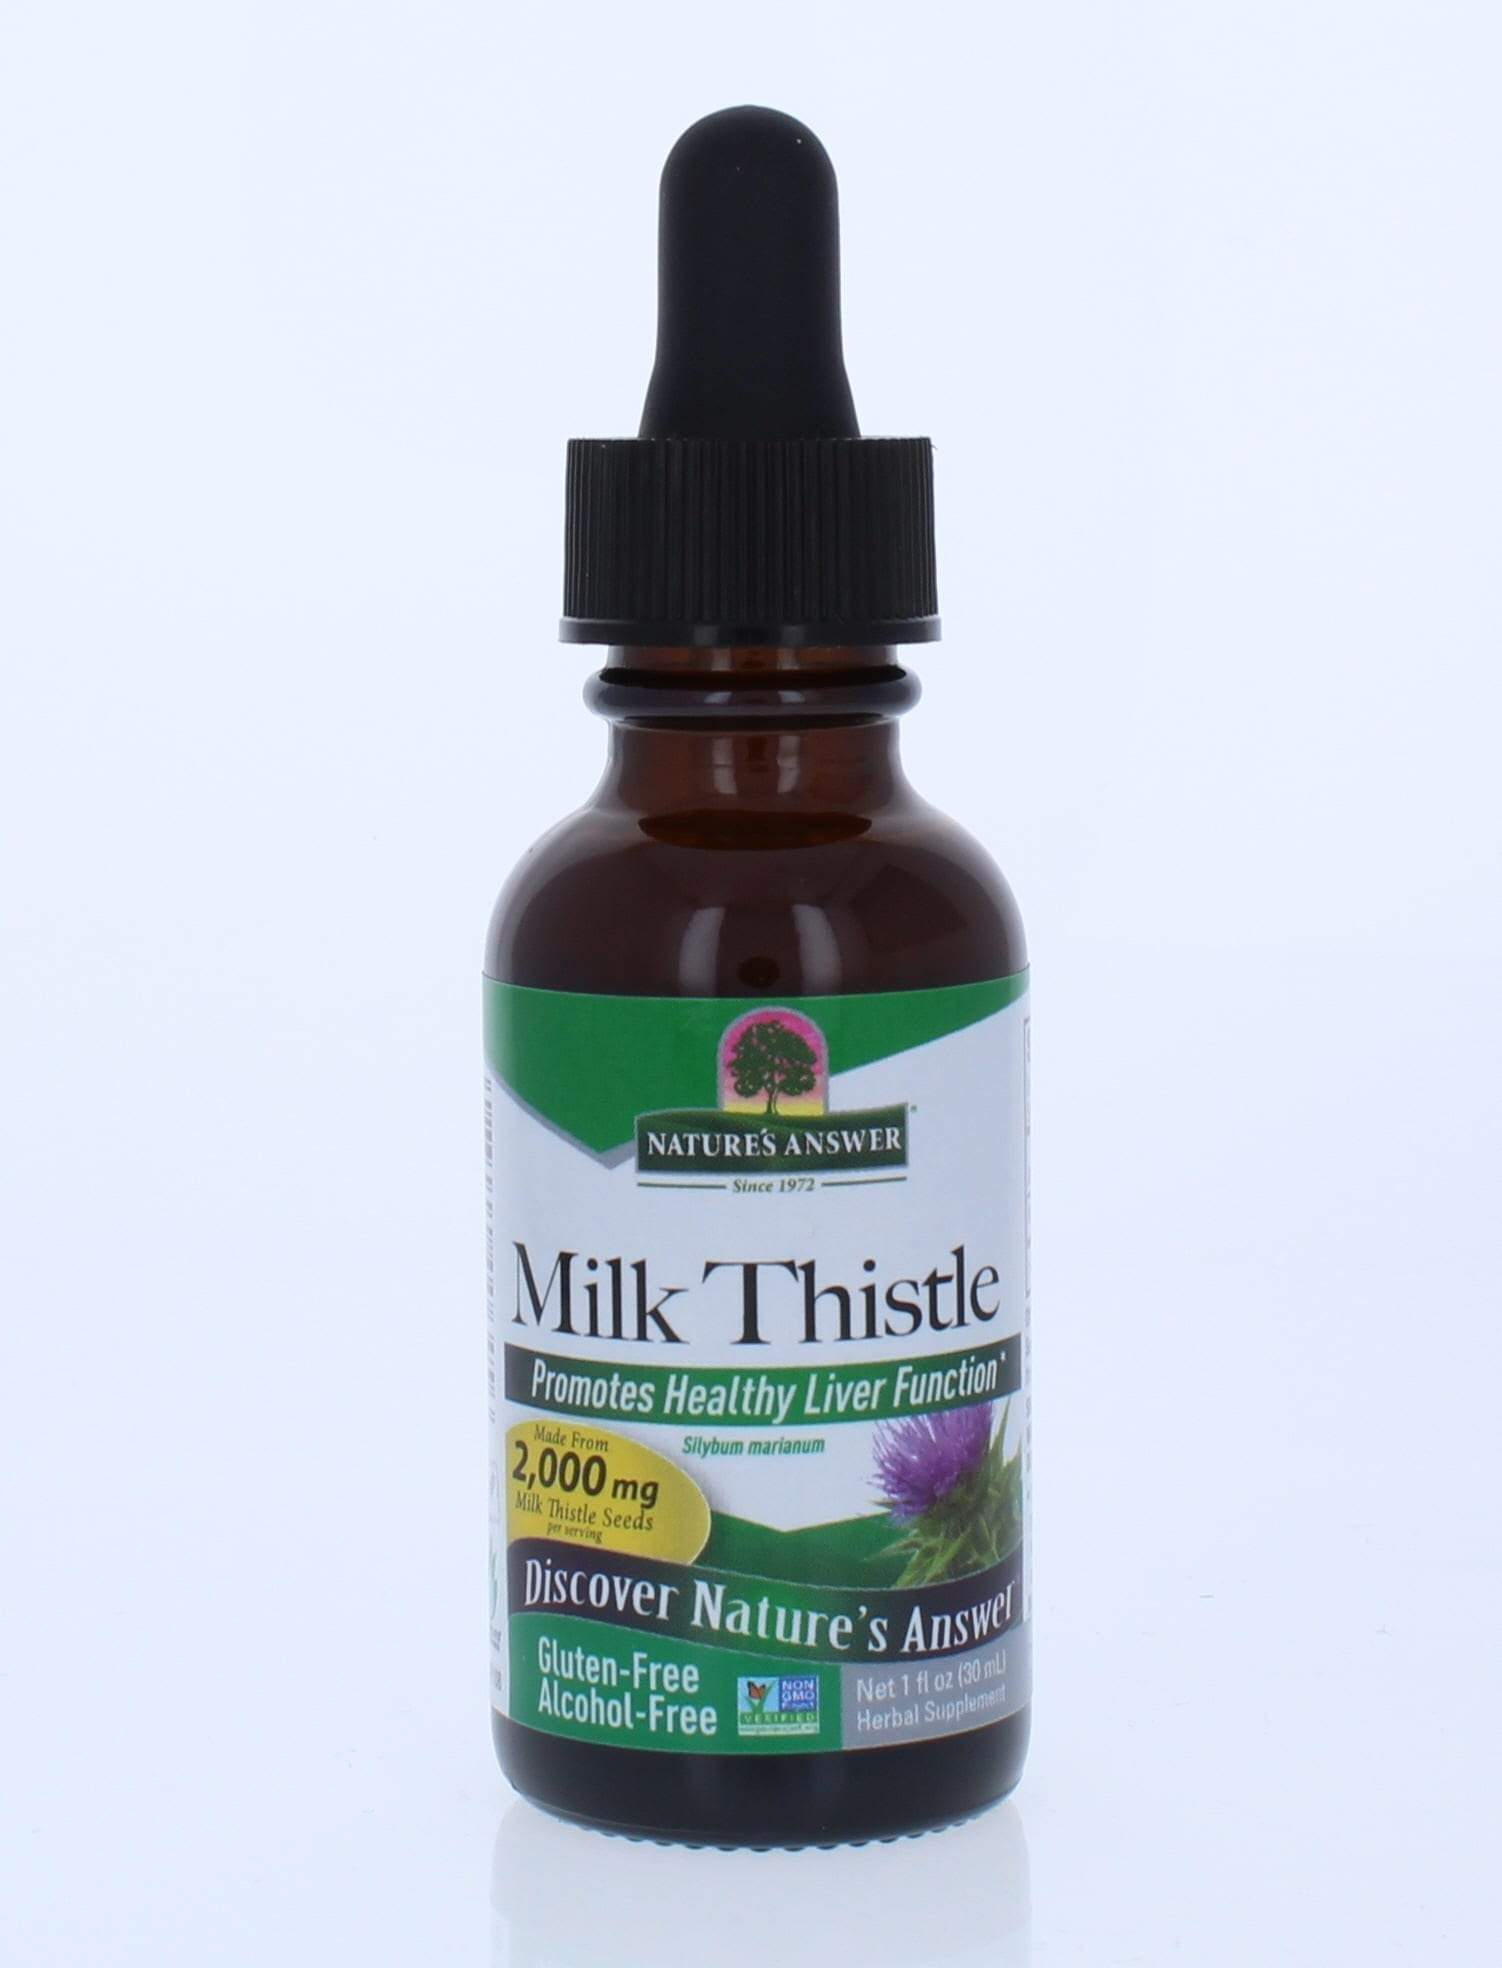 Nature's Answer Milk Thistle Extract